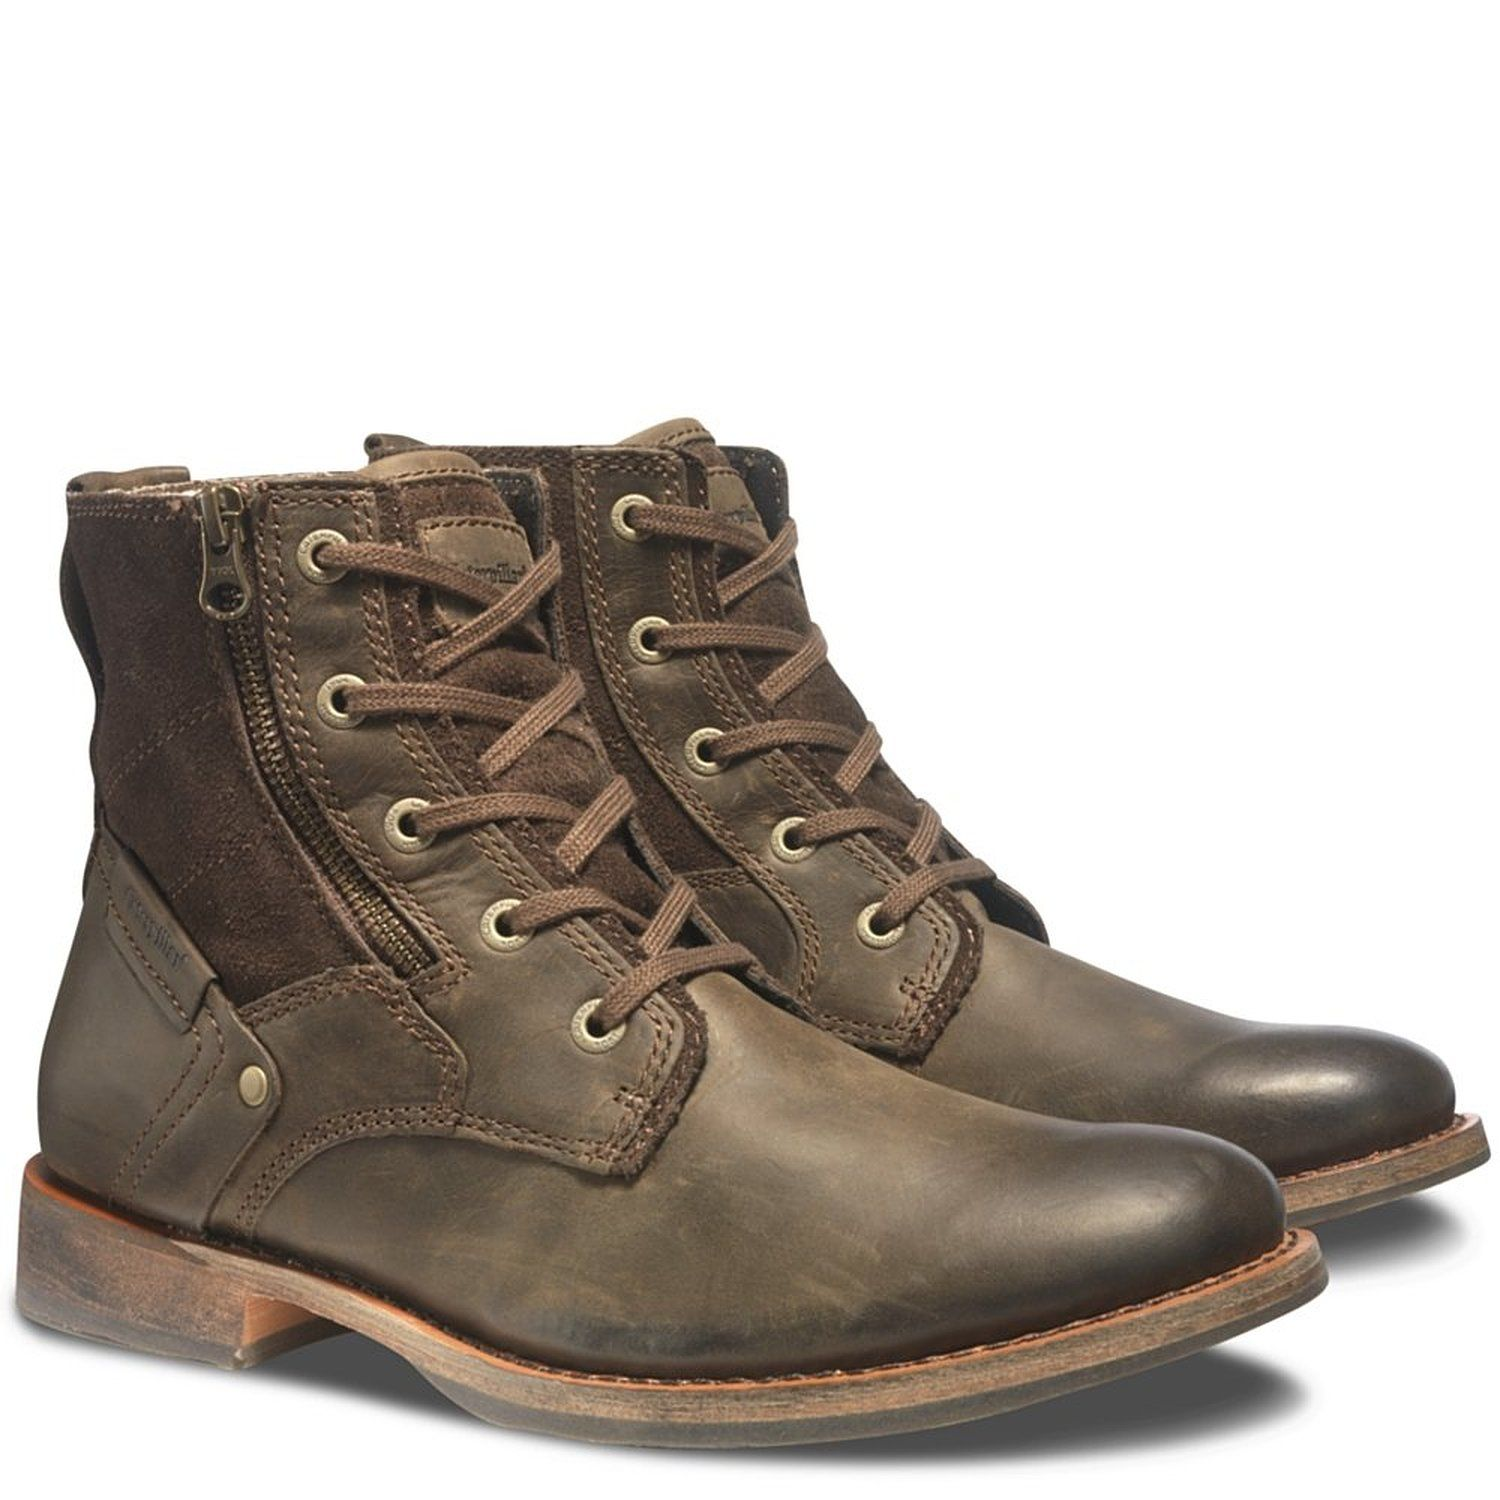 Official CAT Footwear site - Shop casual boots for men from CAT Footwear  and enjoy everyday free express shipping on your order.